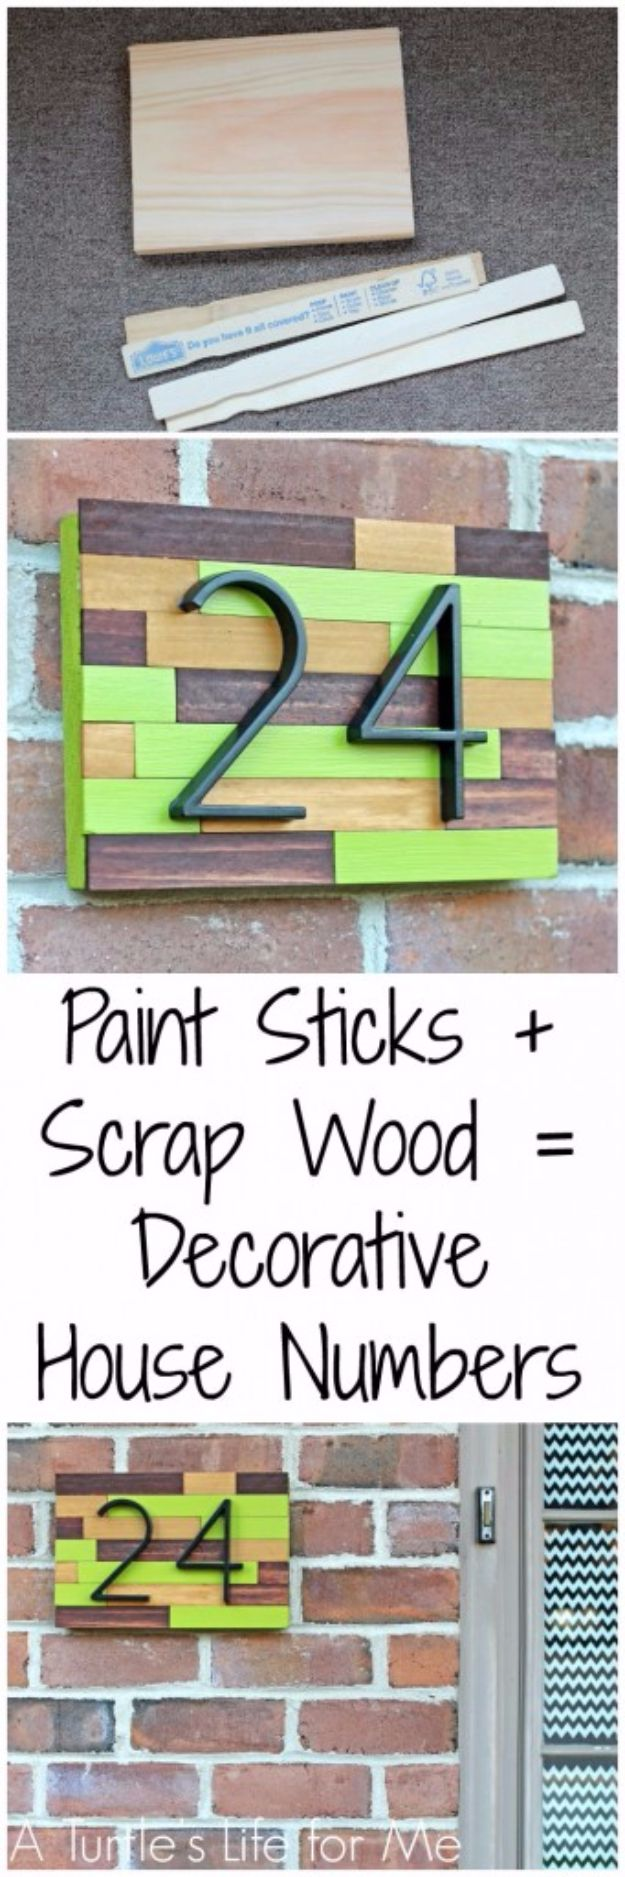 DIY House Numbers - House Number Plaque From Paint Sticks And Scrap Wood - DIY Numbers To Put In Front Yard and At Front Door - Architectural Numbers and Creative Do It Yourself Projects for Making House Numbers - Easy Step by Step Tutorials and Project Ideas for Home Improvement on A Budget #homeimprovement #diyhomedecor